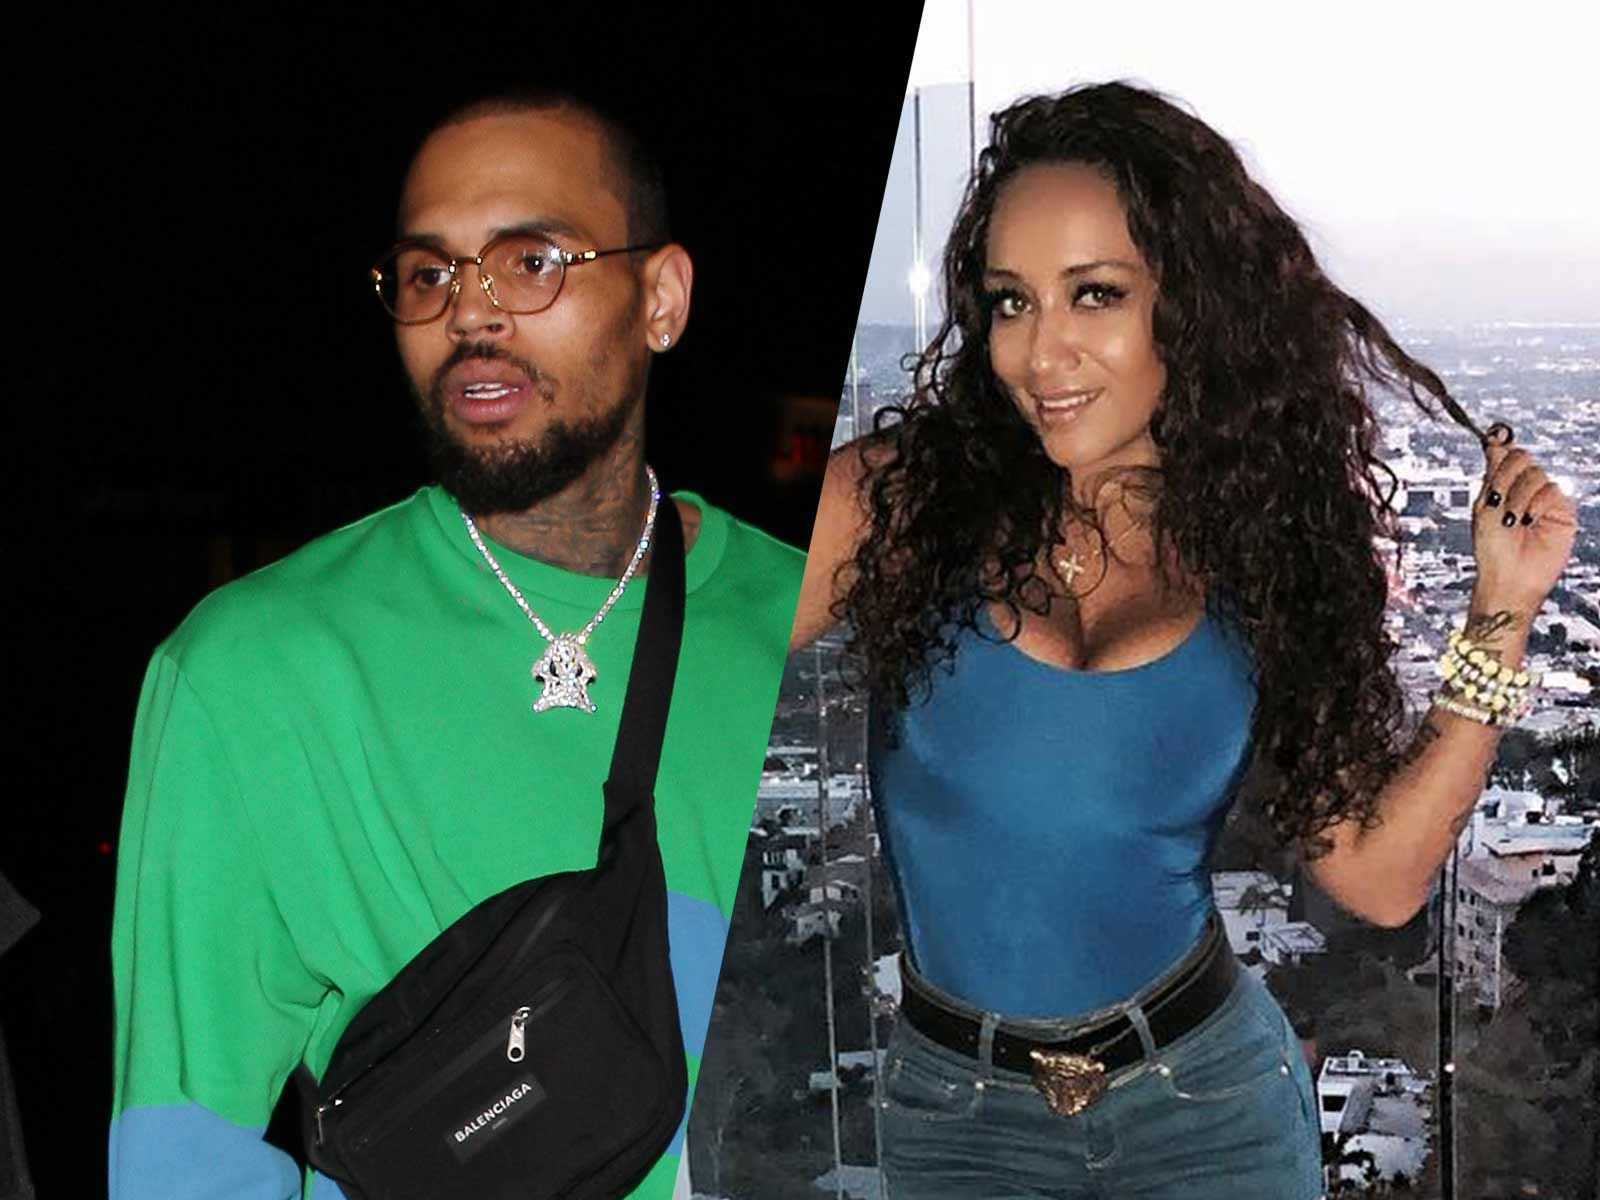 Chris Brown and Baby Mama Custody War Launched Over Child